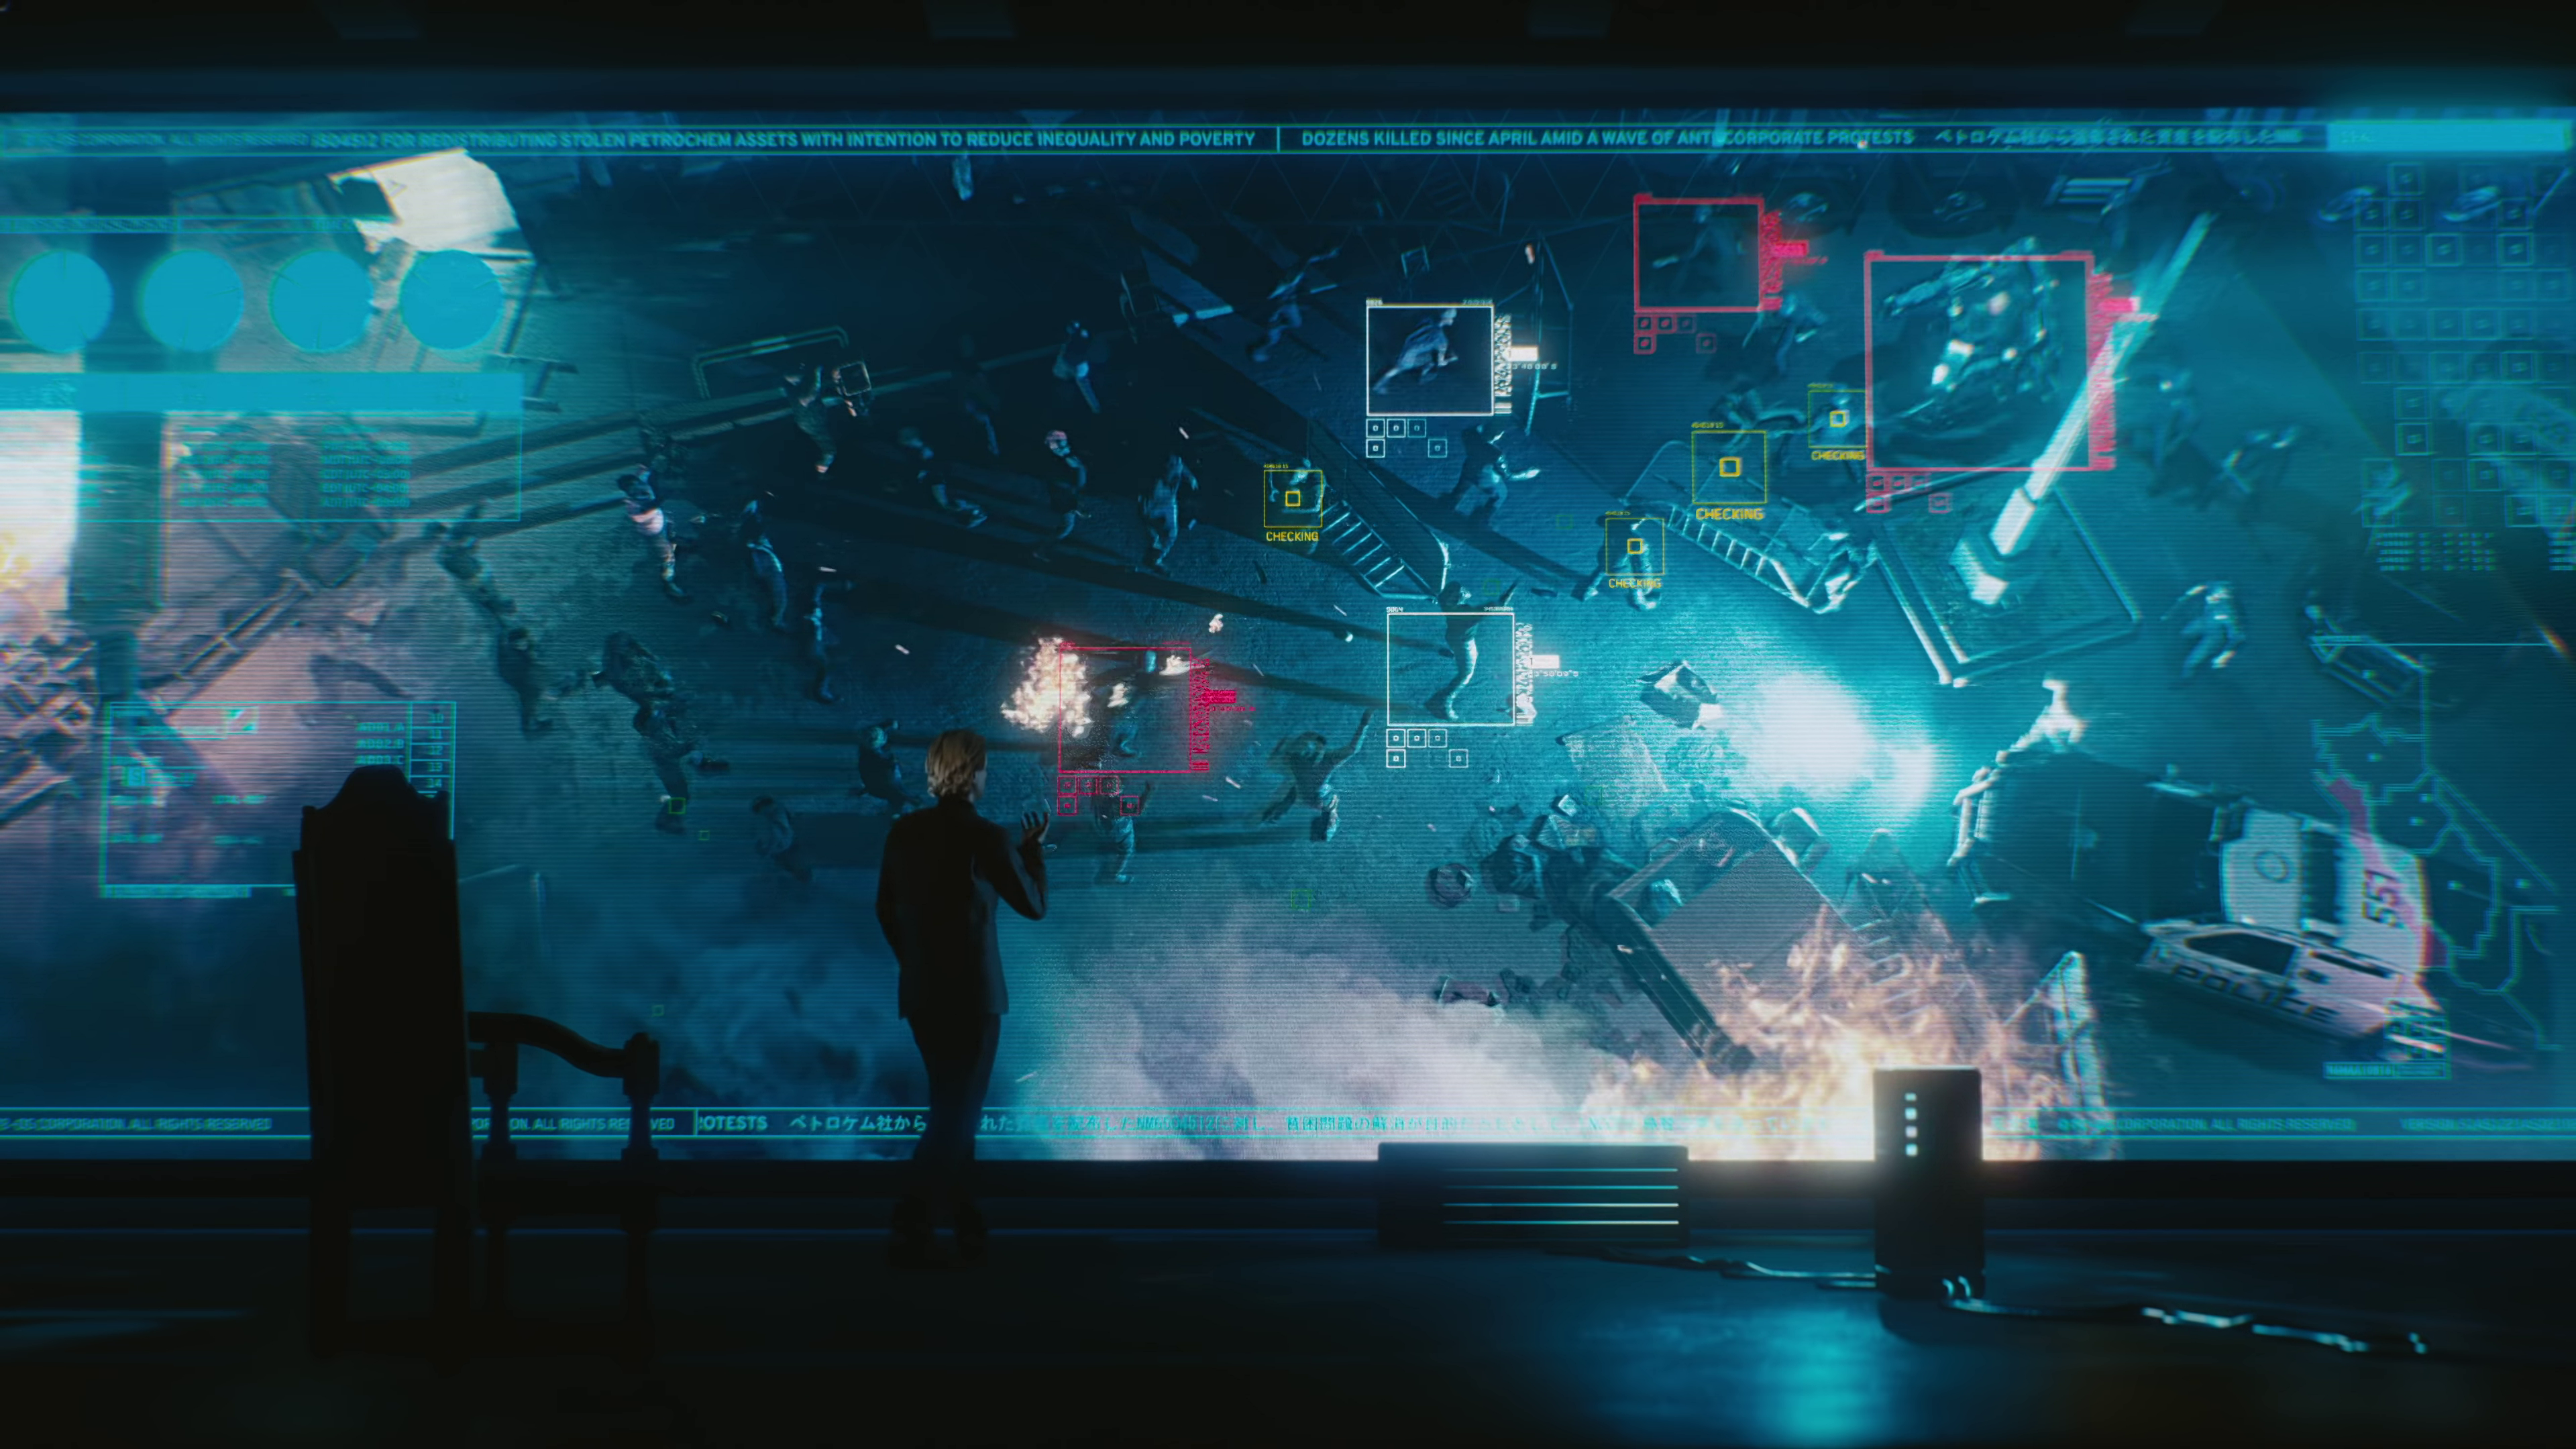 Uhd Cyberpunk 2077 Wallpapers Wallpaper Download High Resolution 4k Wallpaper